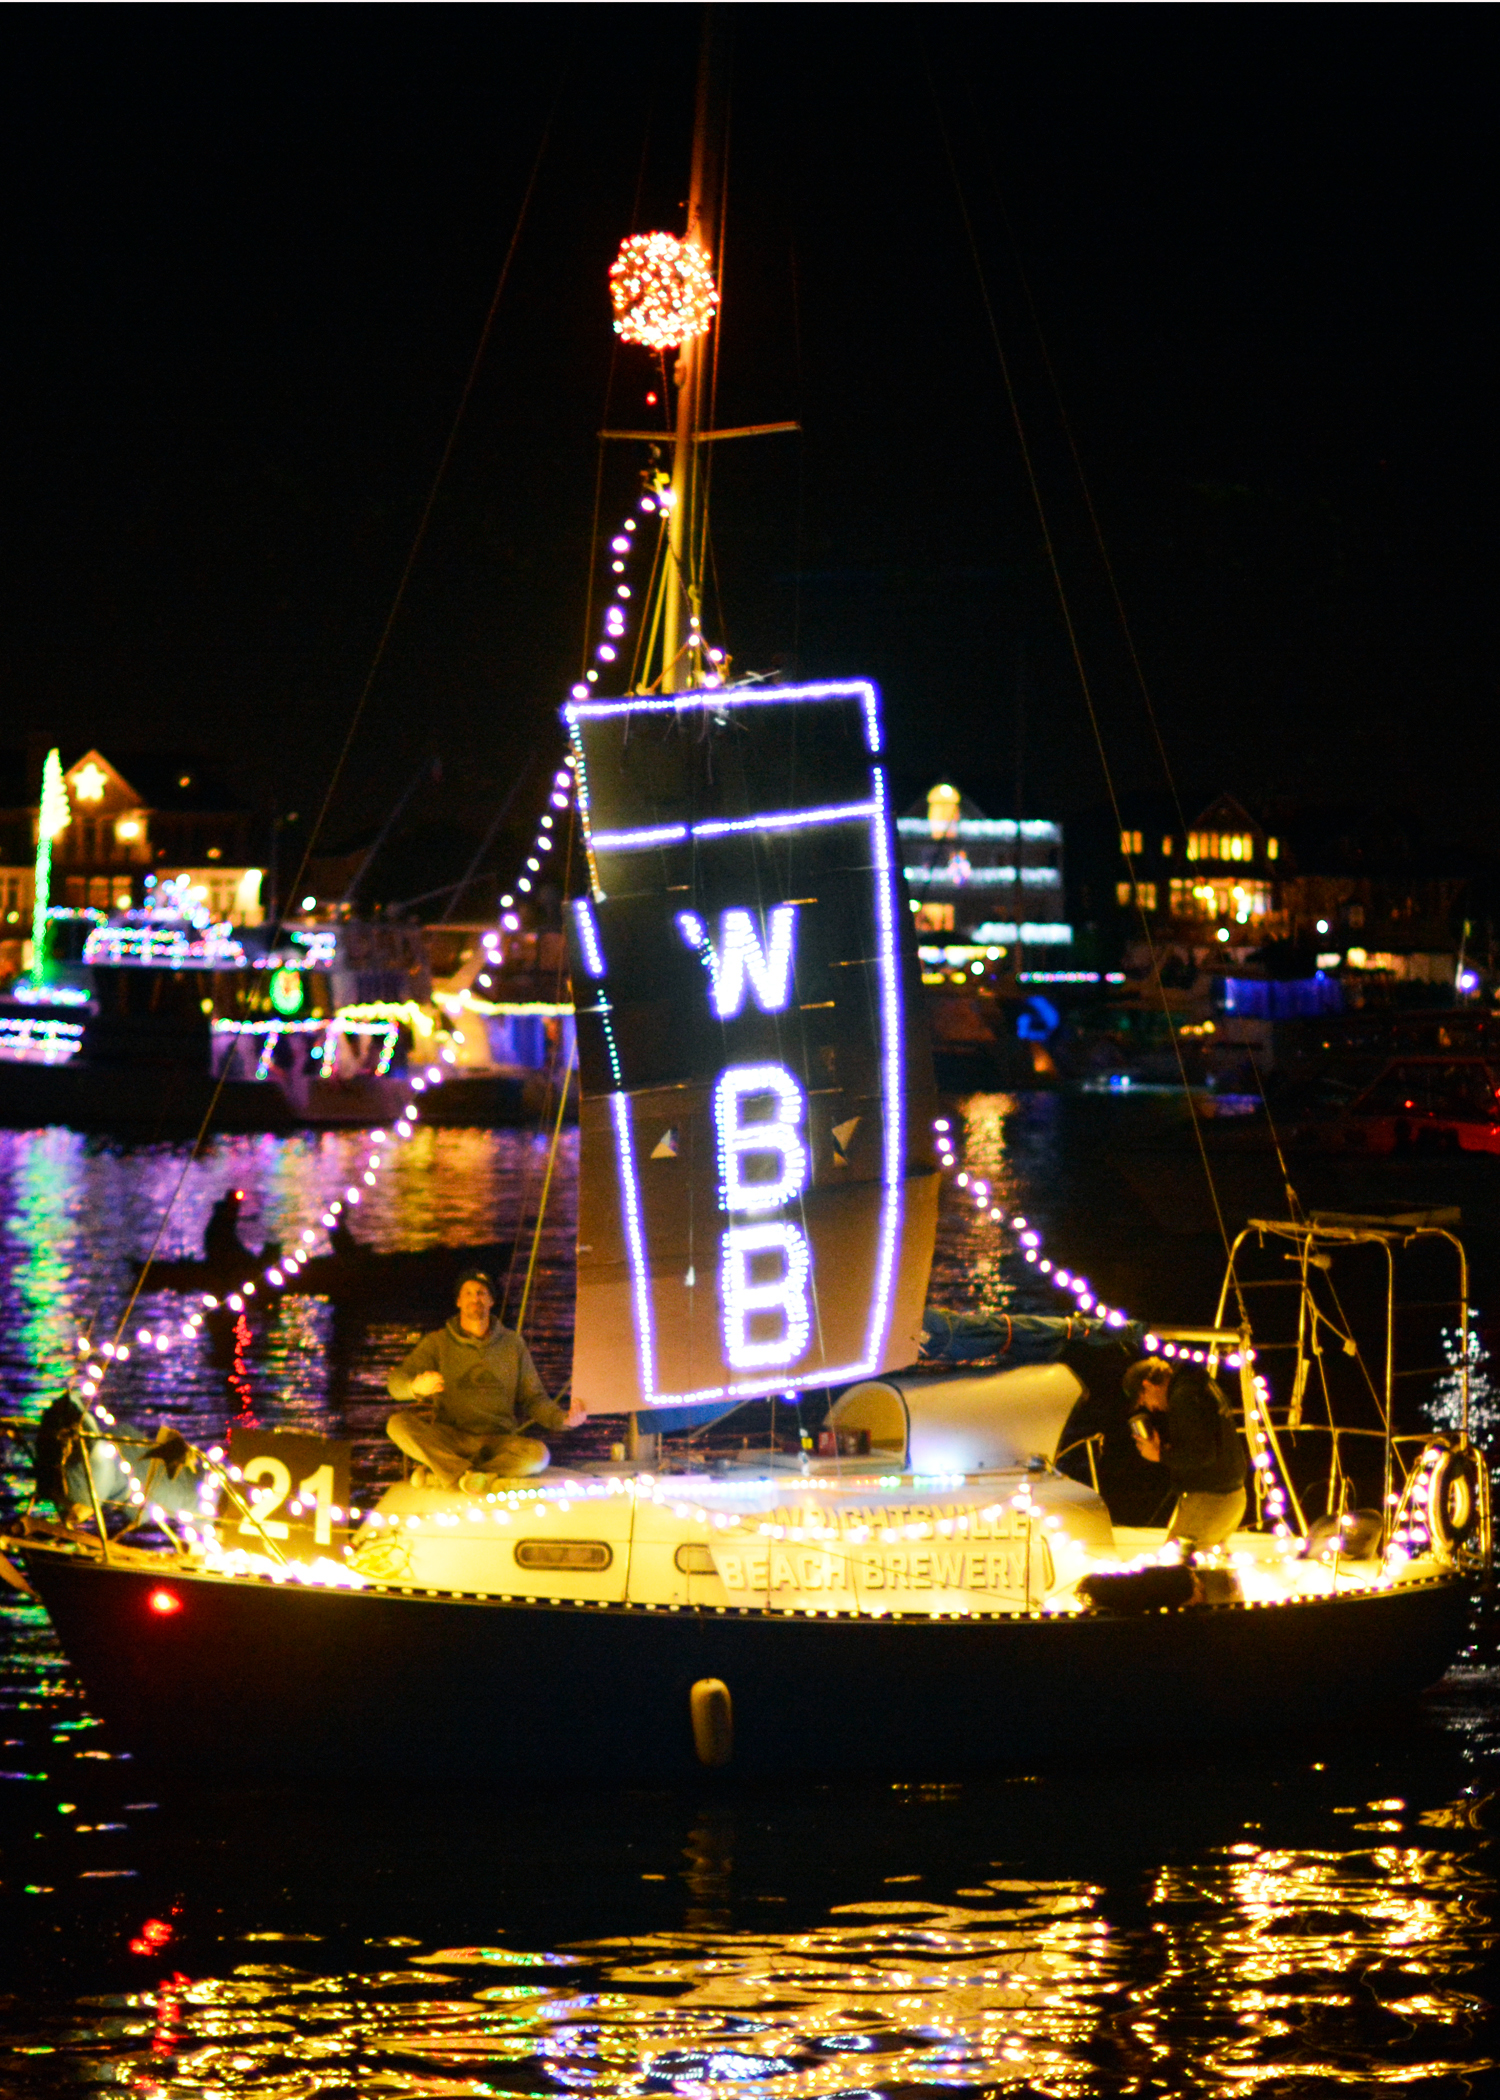 "<div class=""meta image-caption""><div class=""origin-logo origin-image none""><span>none</span></div><span class=""caption-text"">2017 NC Holiday Flotilla Best Sailboat Award winner (Credit: Beth W. Hedgepeth)</span></div>"